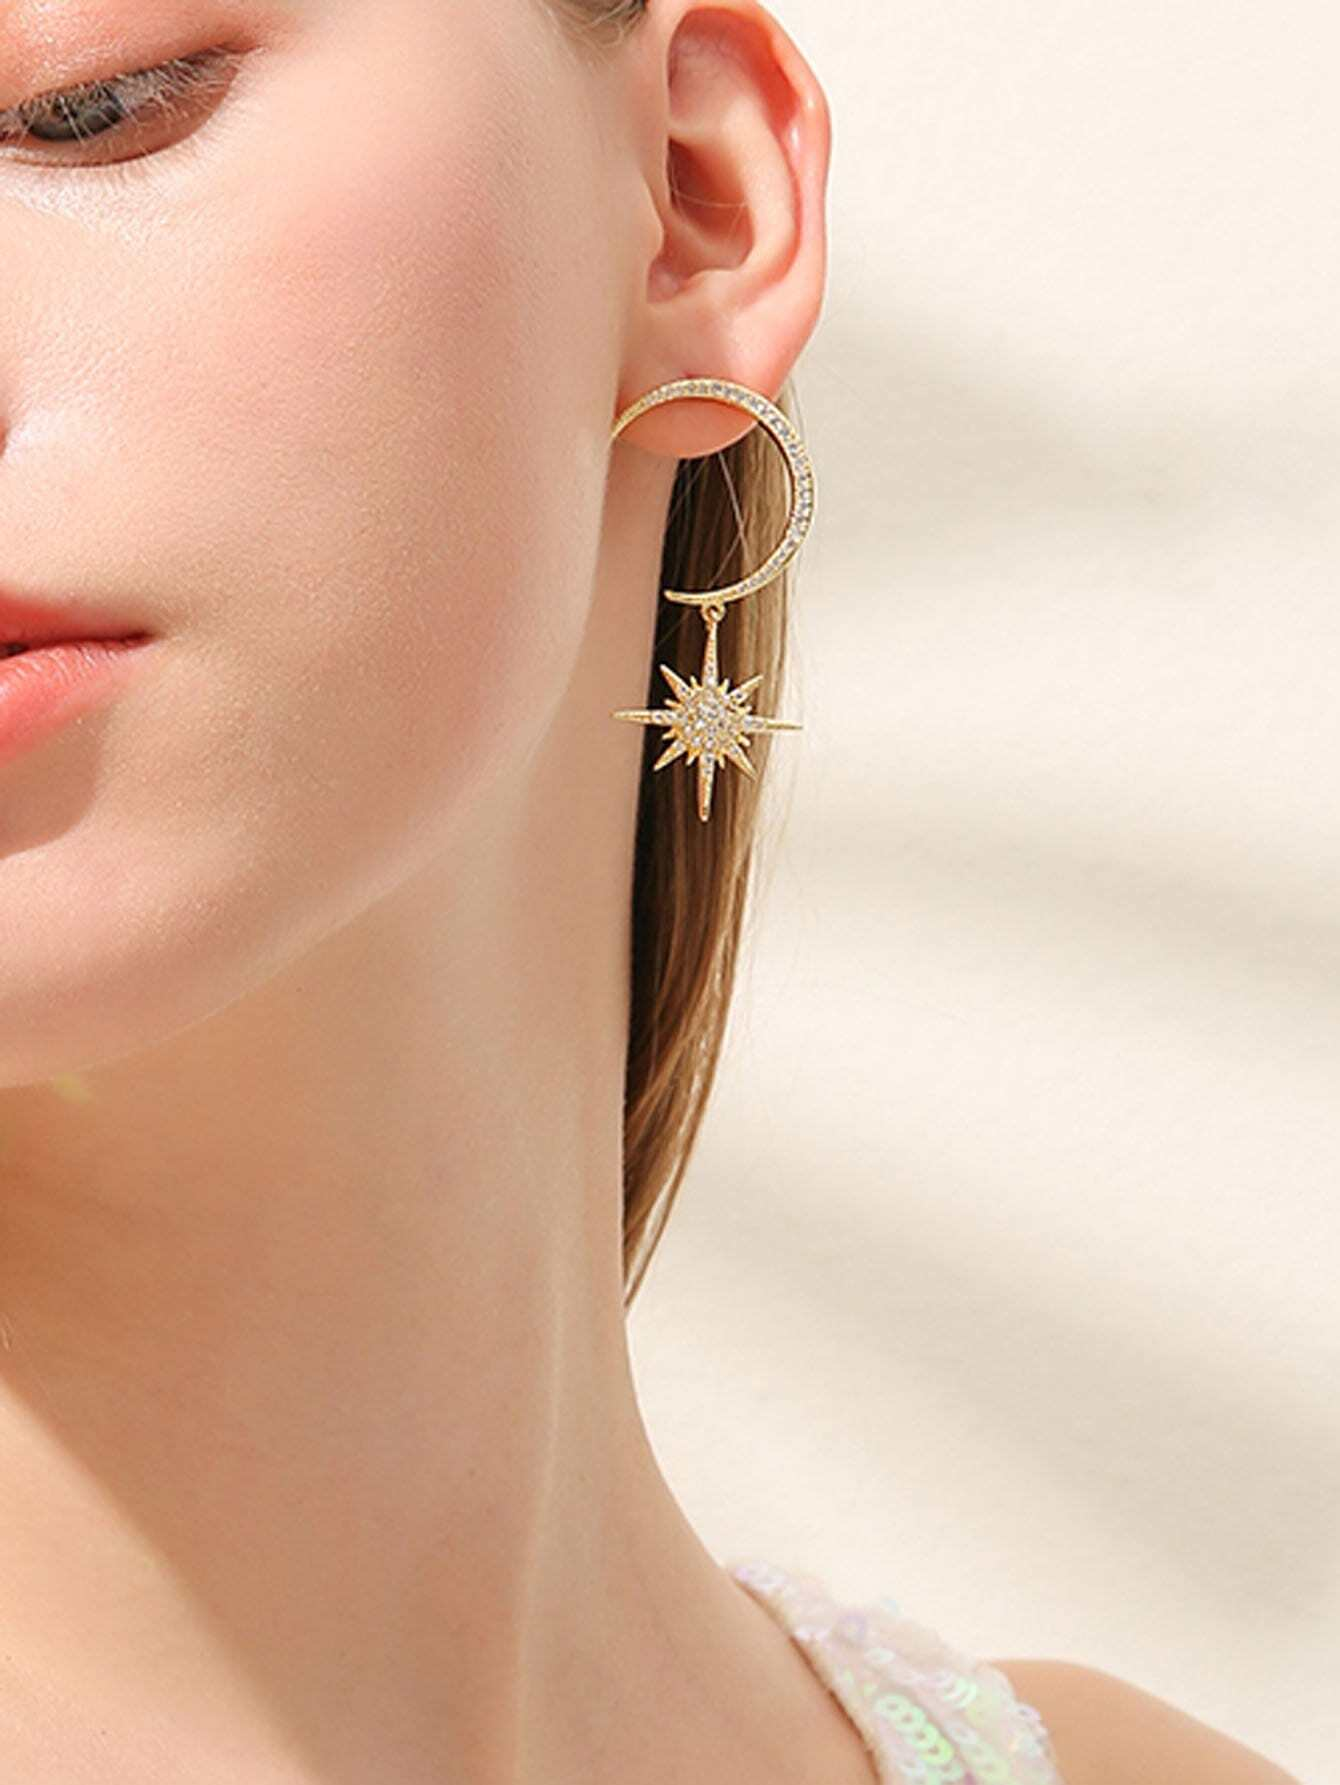 Moon Shaped Drop Earrings hollow water drop shaped drop earrings